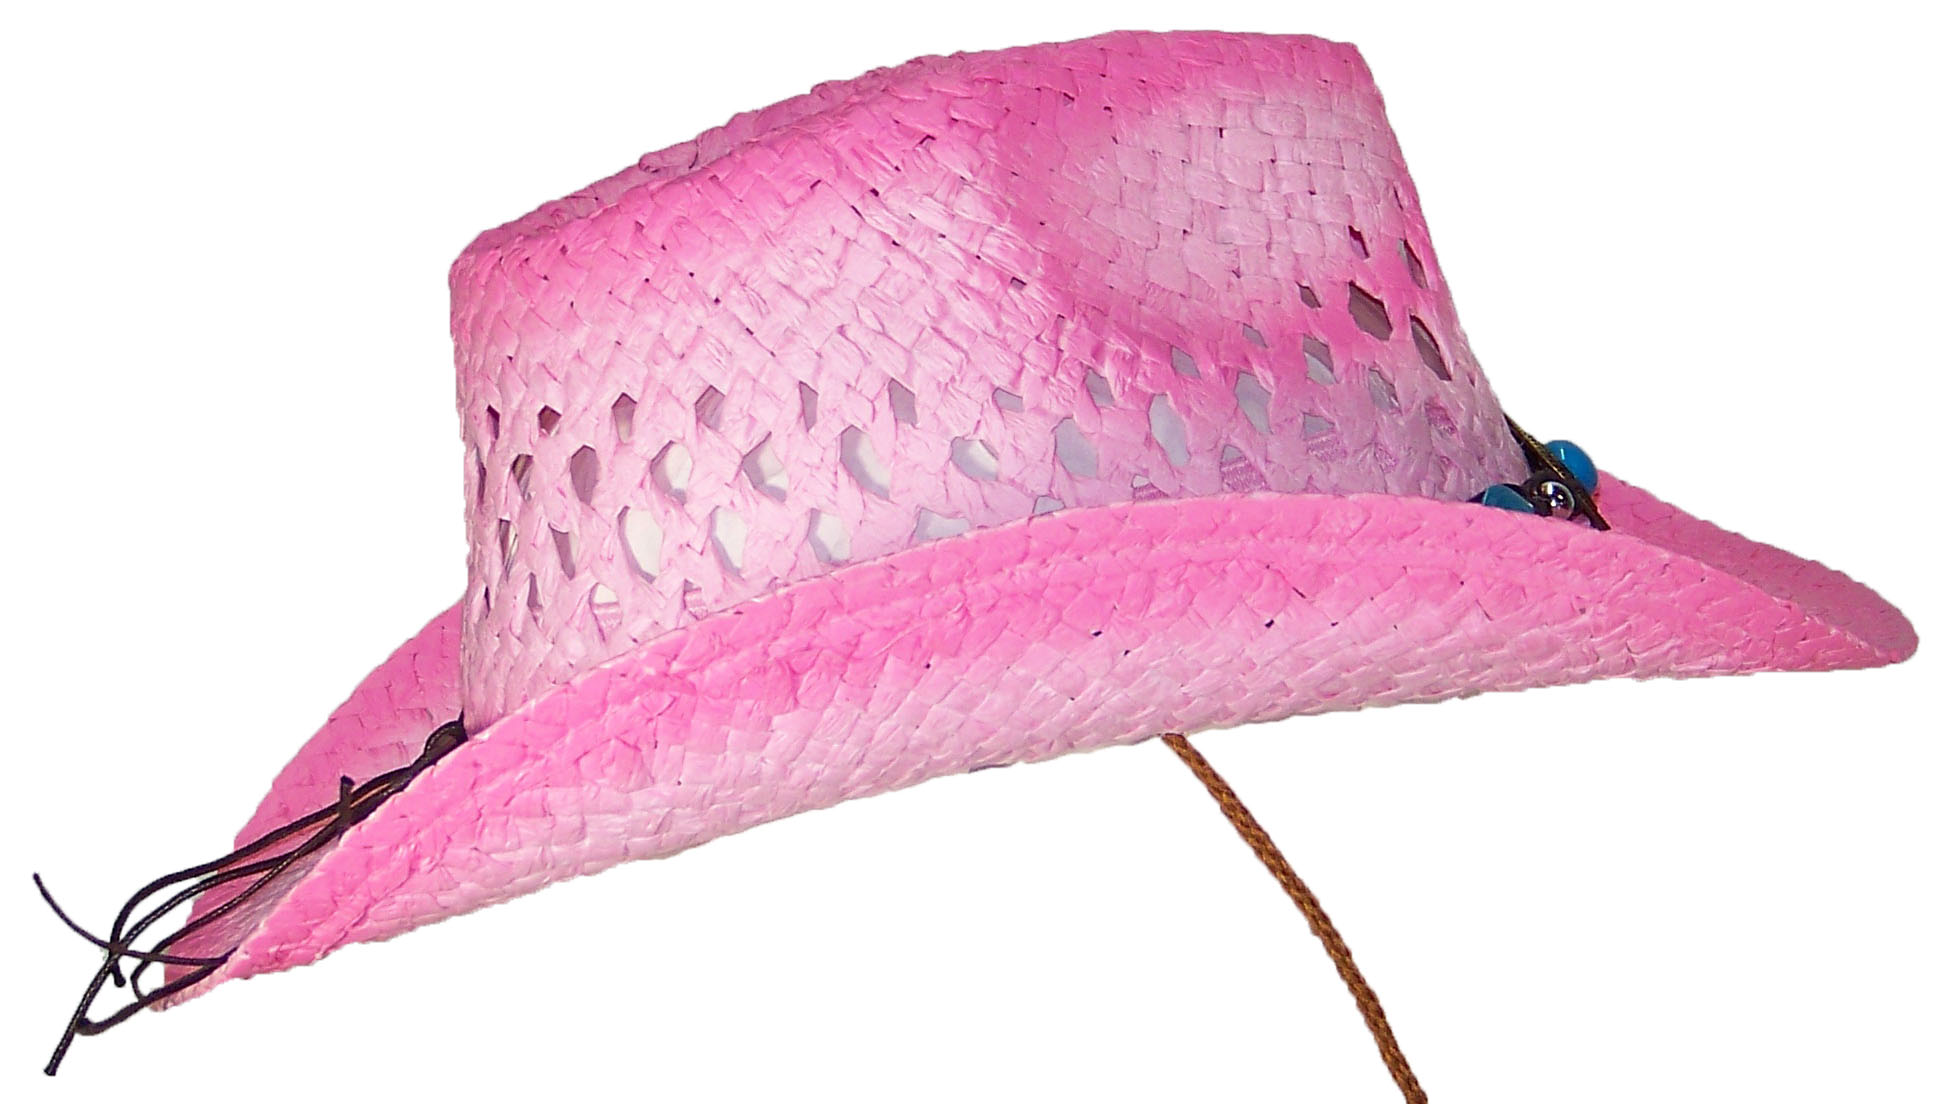 Tropic Hats Little Kids Paper Straw Cowboy Cowgirl W Band   Buckle 6a5ef8e91d74